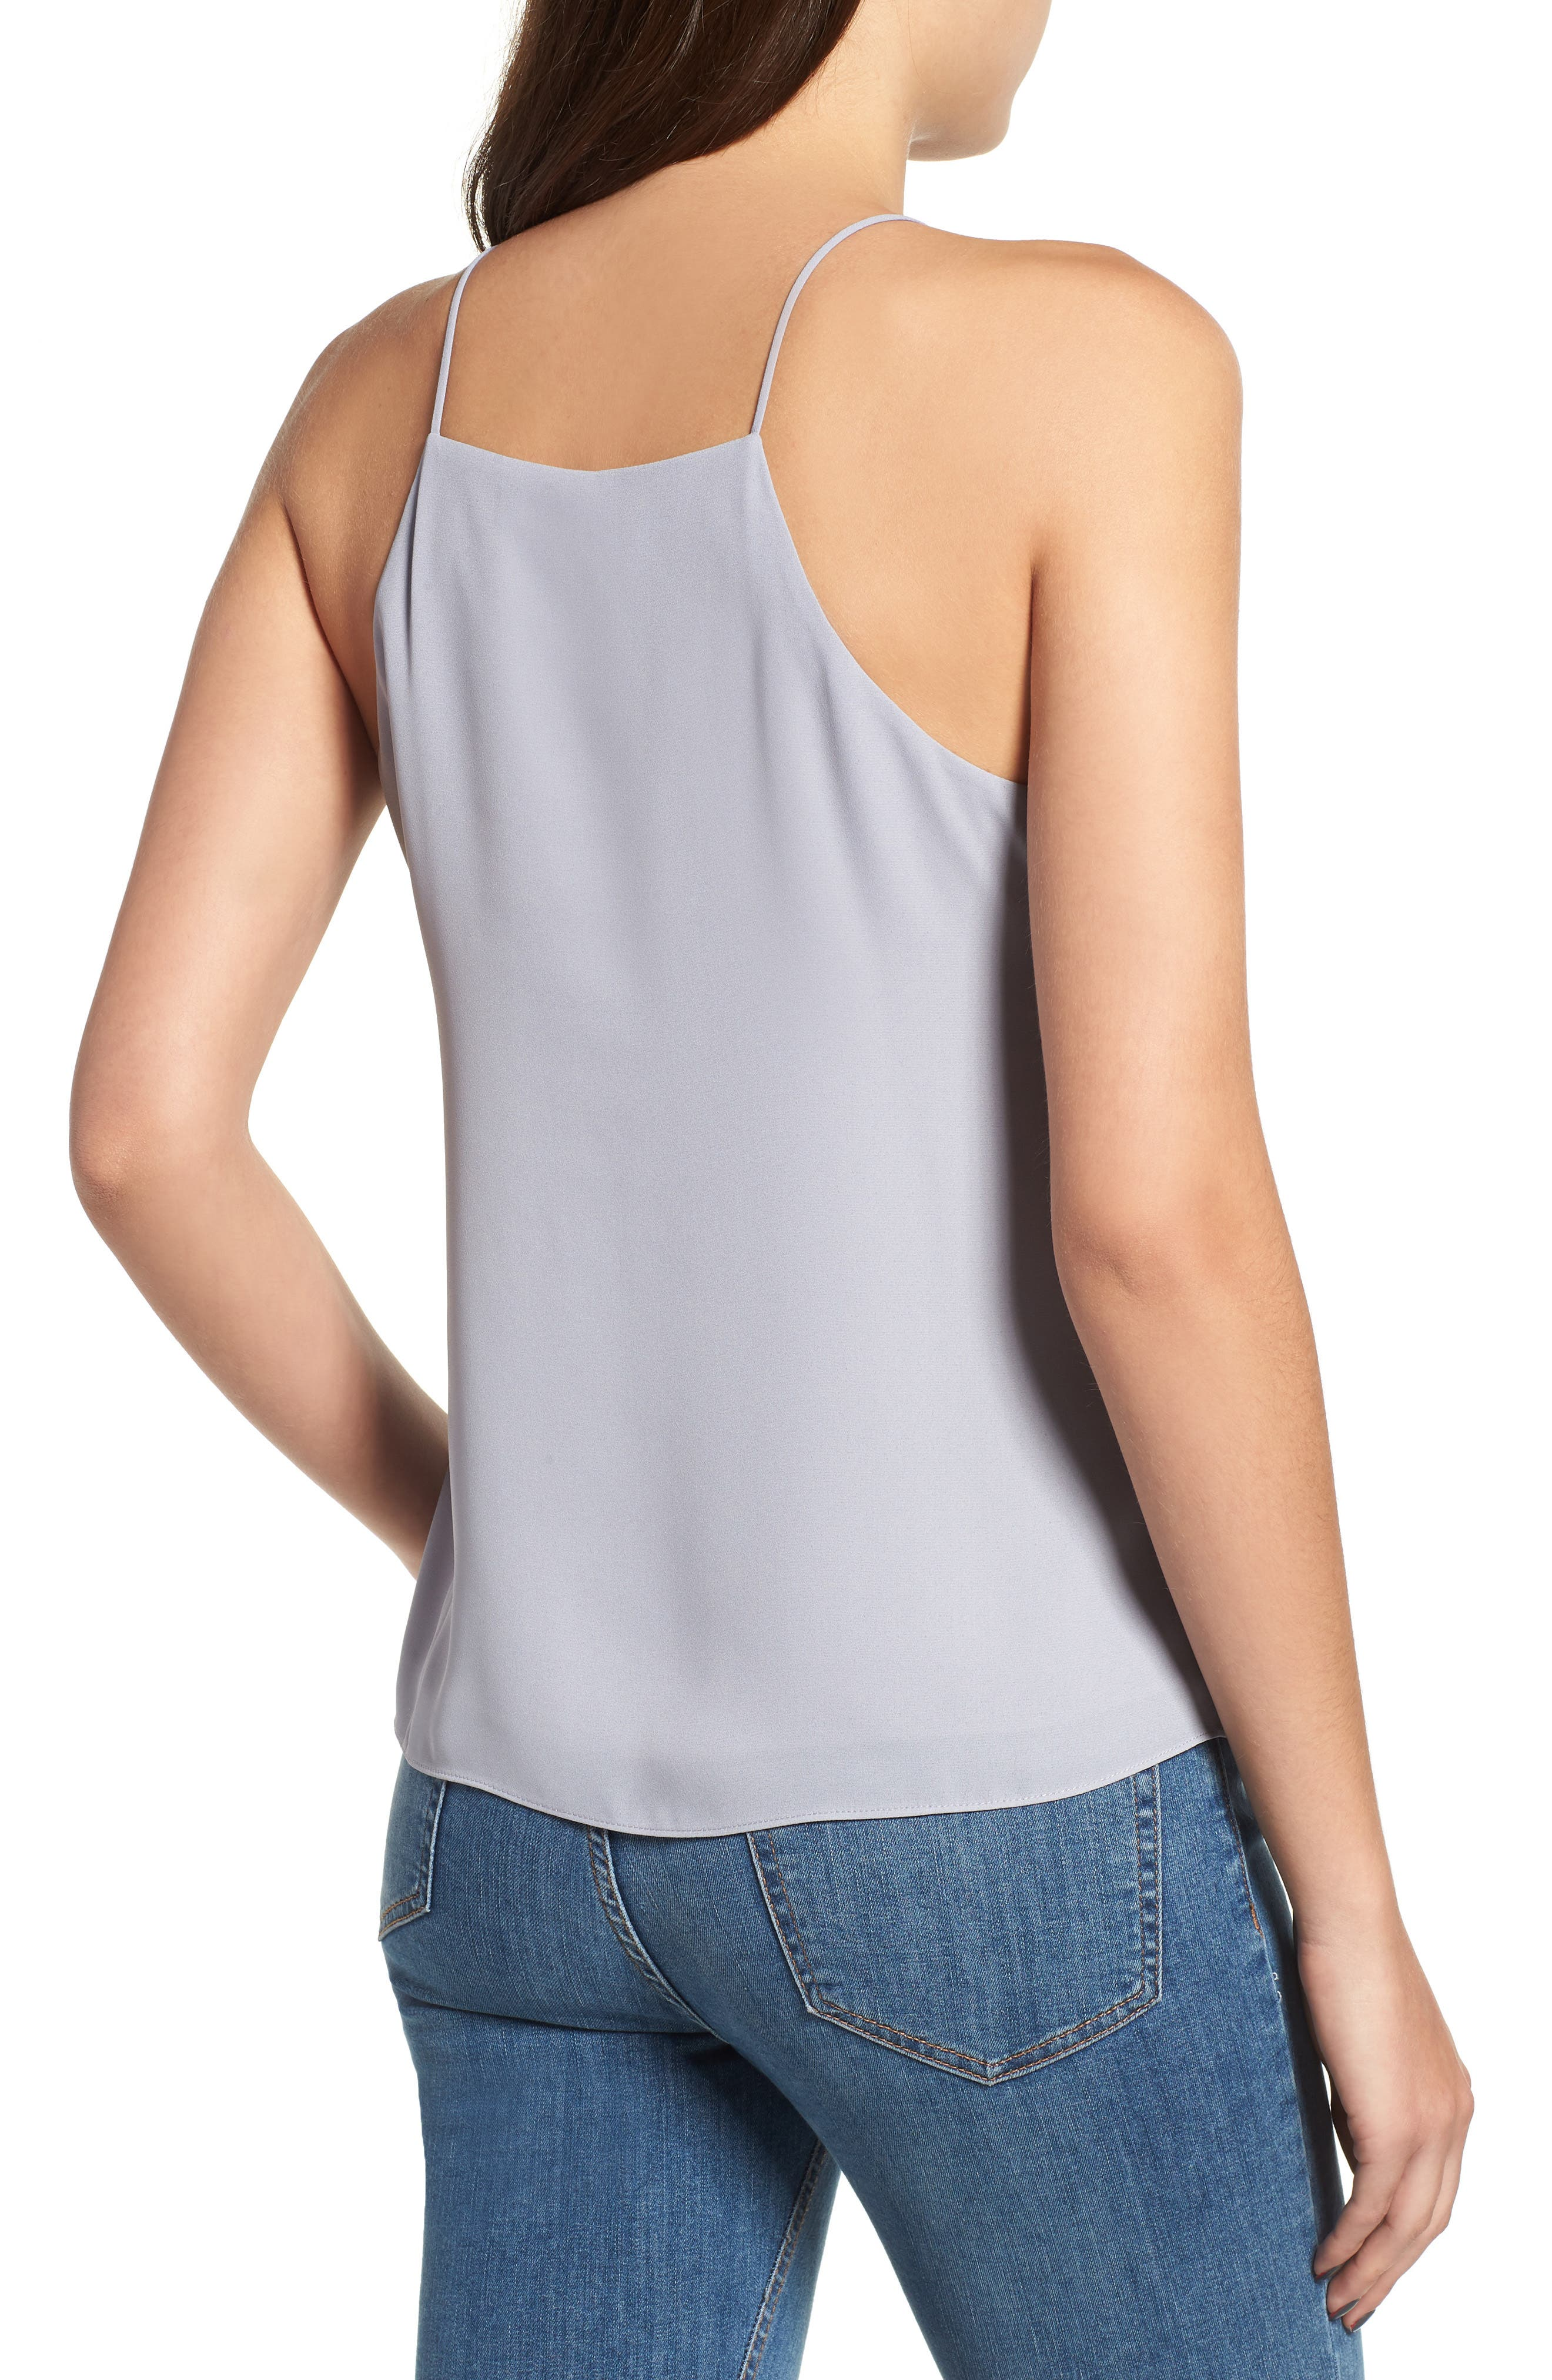 Posie Strappy Camisole,                             Alternate thumbnail 2, color,                             Grey Lilac